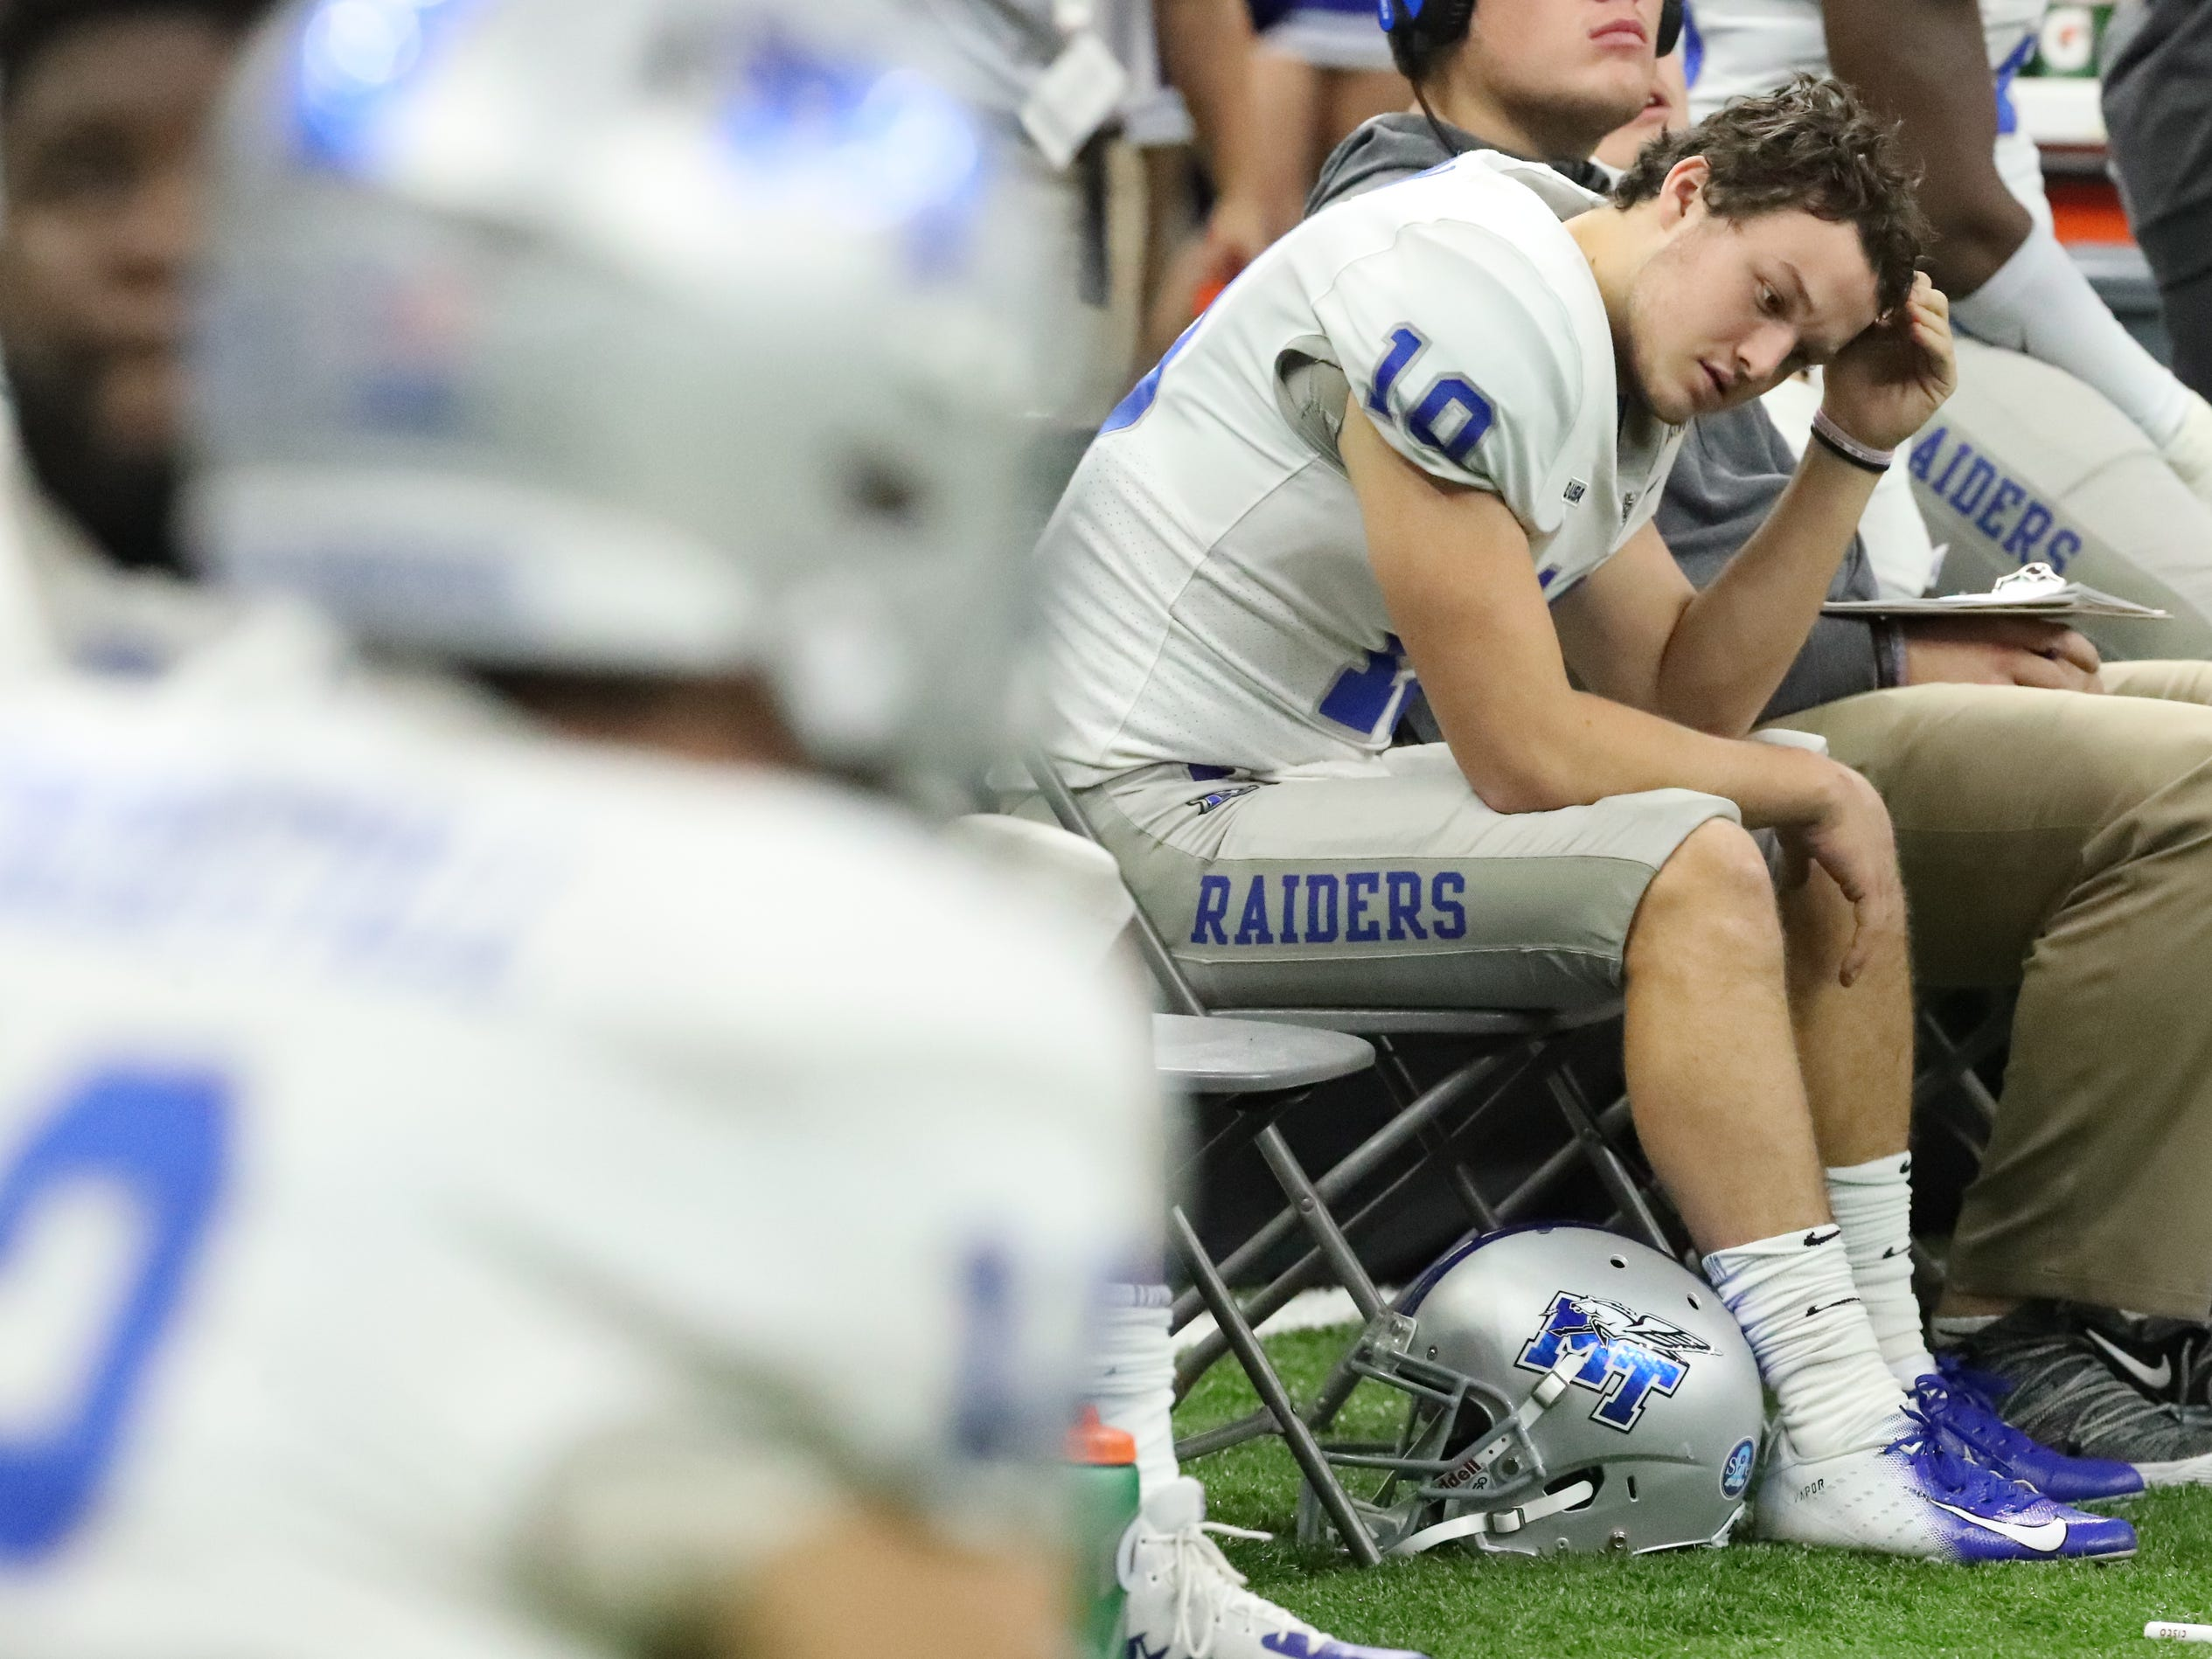 Middle Tennessee Blue Raiders quarterback Asher O'Hara (10) on the sidelines reacting to losing to Appalachian State on Saturday, Dec. 15, 2018, during the New Orleans Bowl.